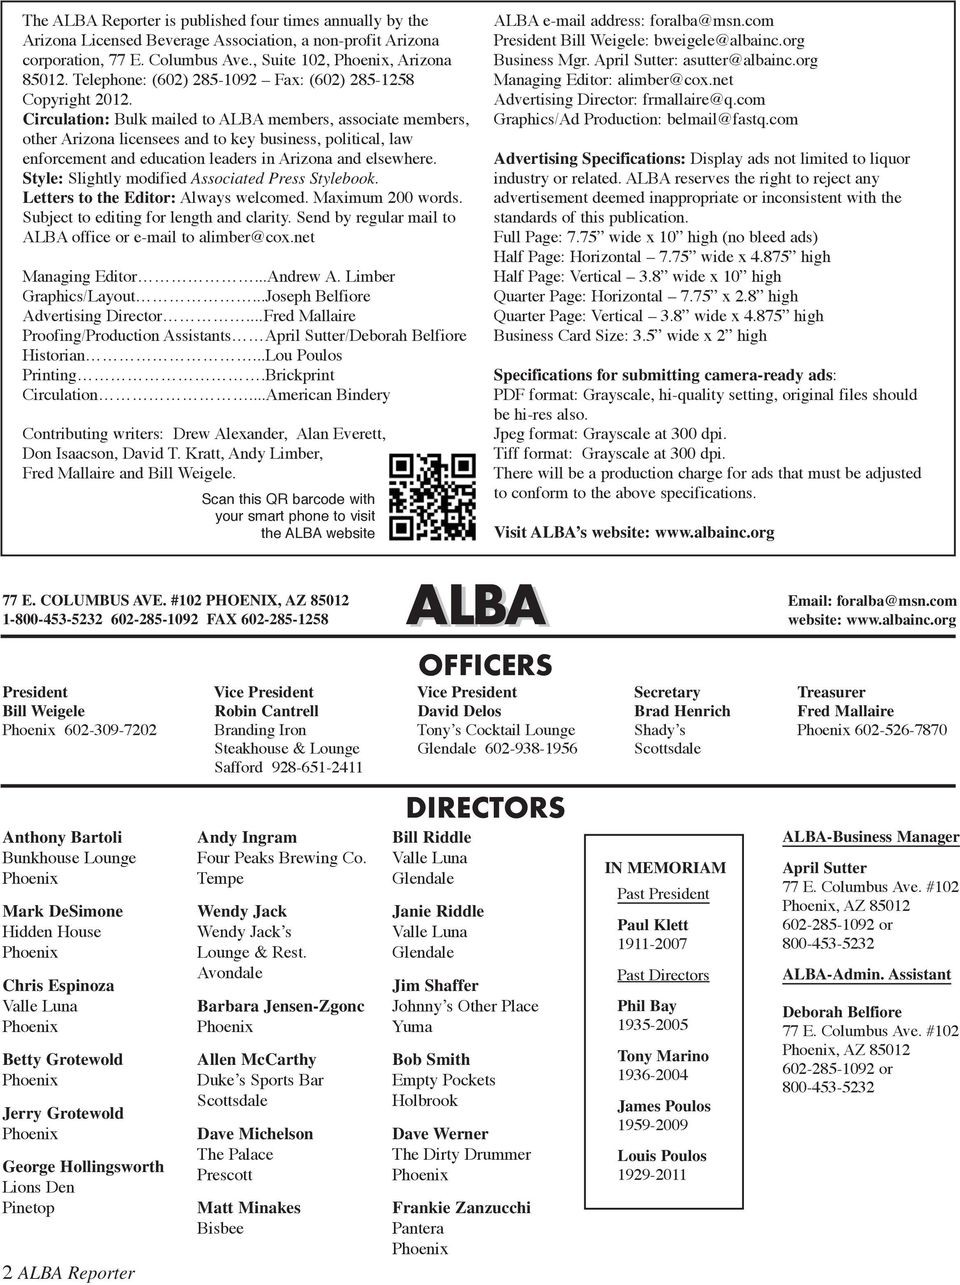 Circulation: Bulk mailed to ALBA members, associate members, other Arizona licensees and to key business, political, law enforcement and education leaders in Arizona and elsewhere.